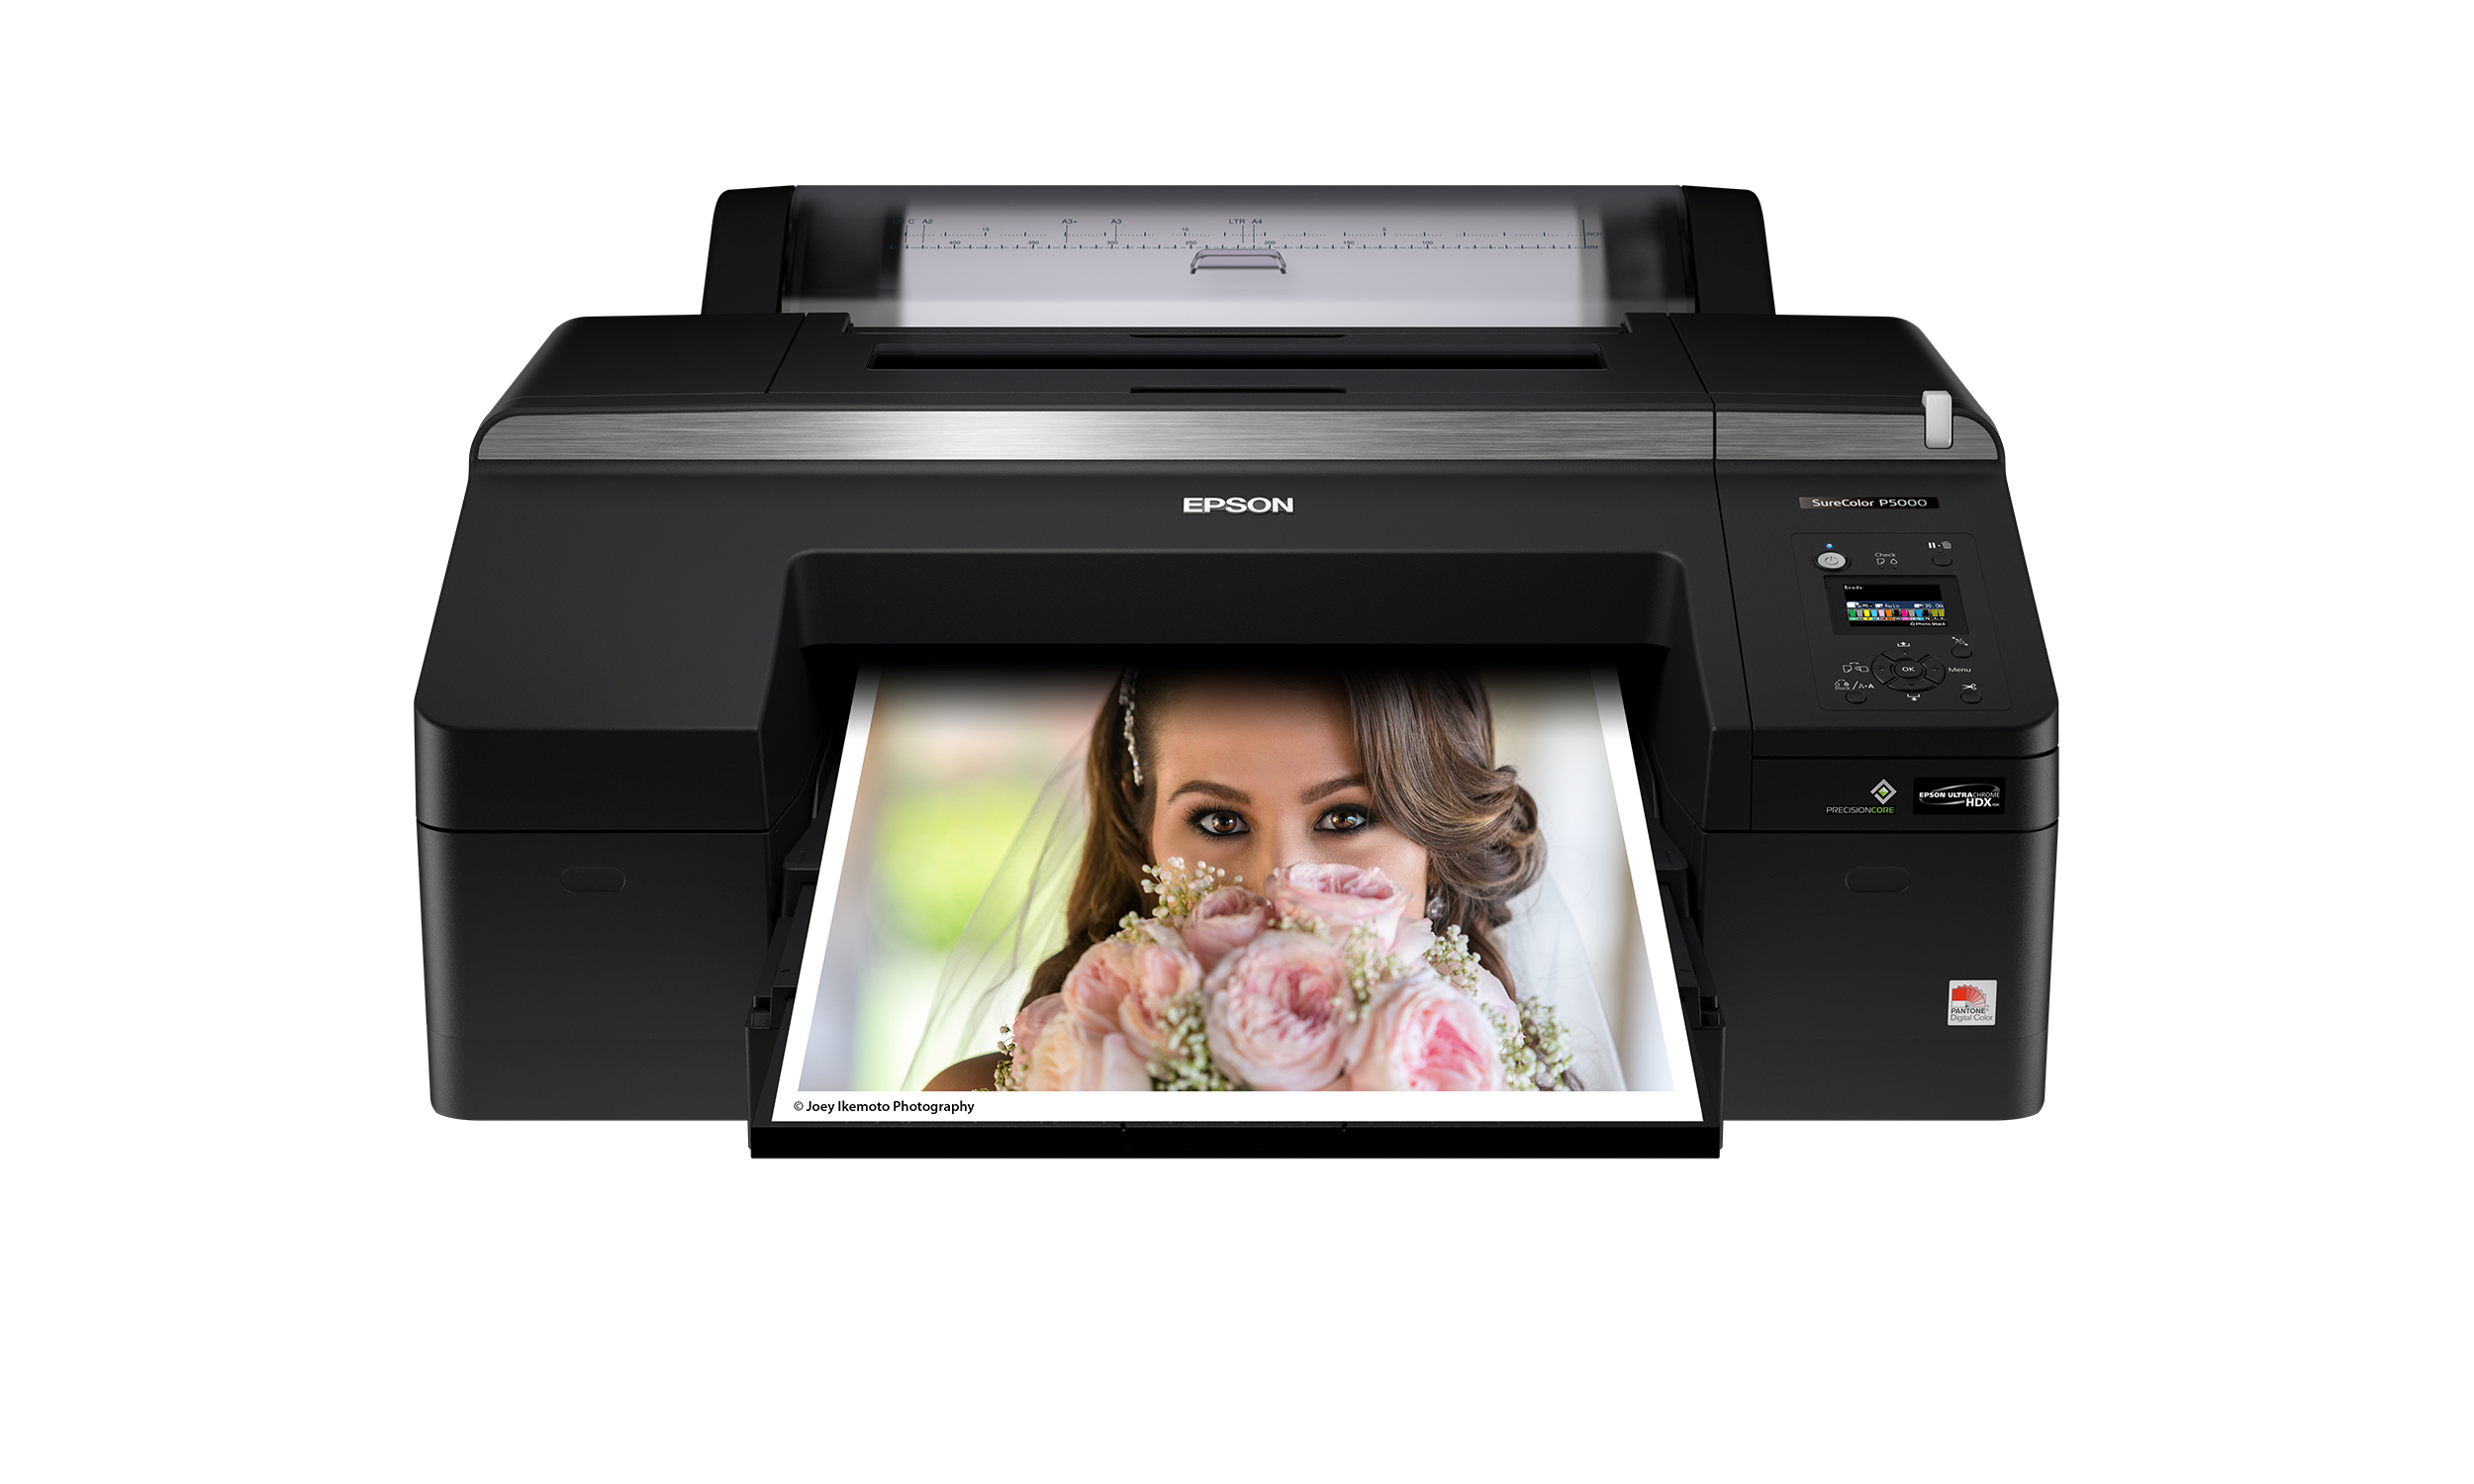 Epson doubles print life with its SureColor P5000 17in